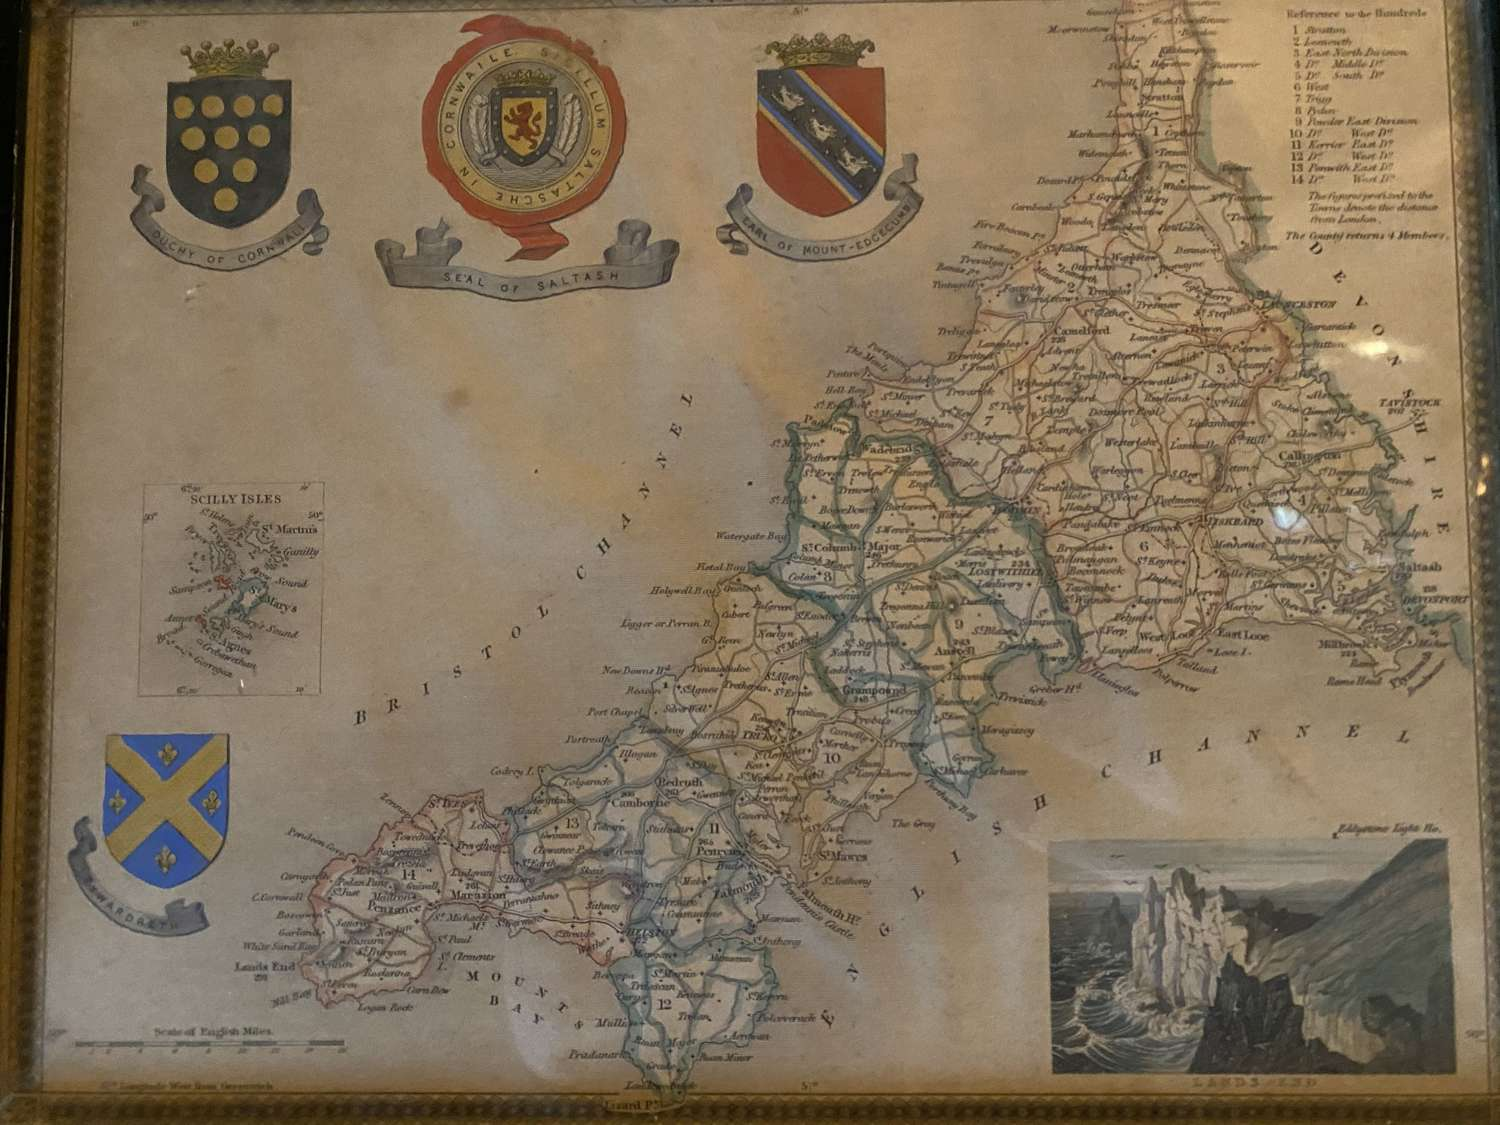 Printed map of Cornwall